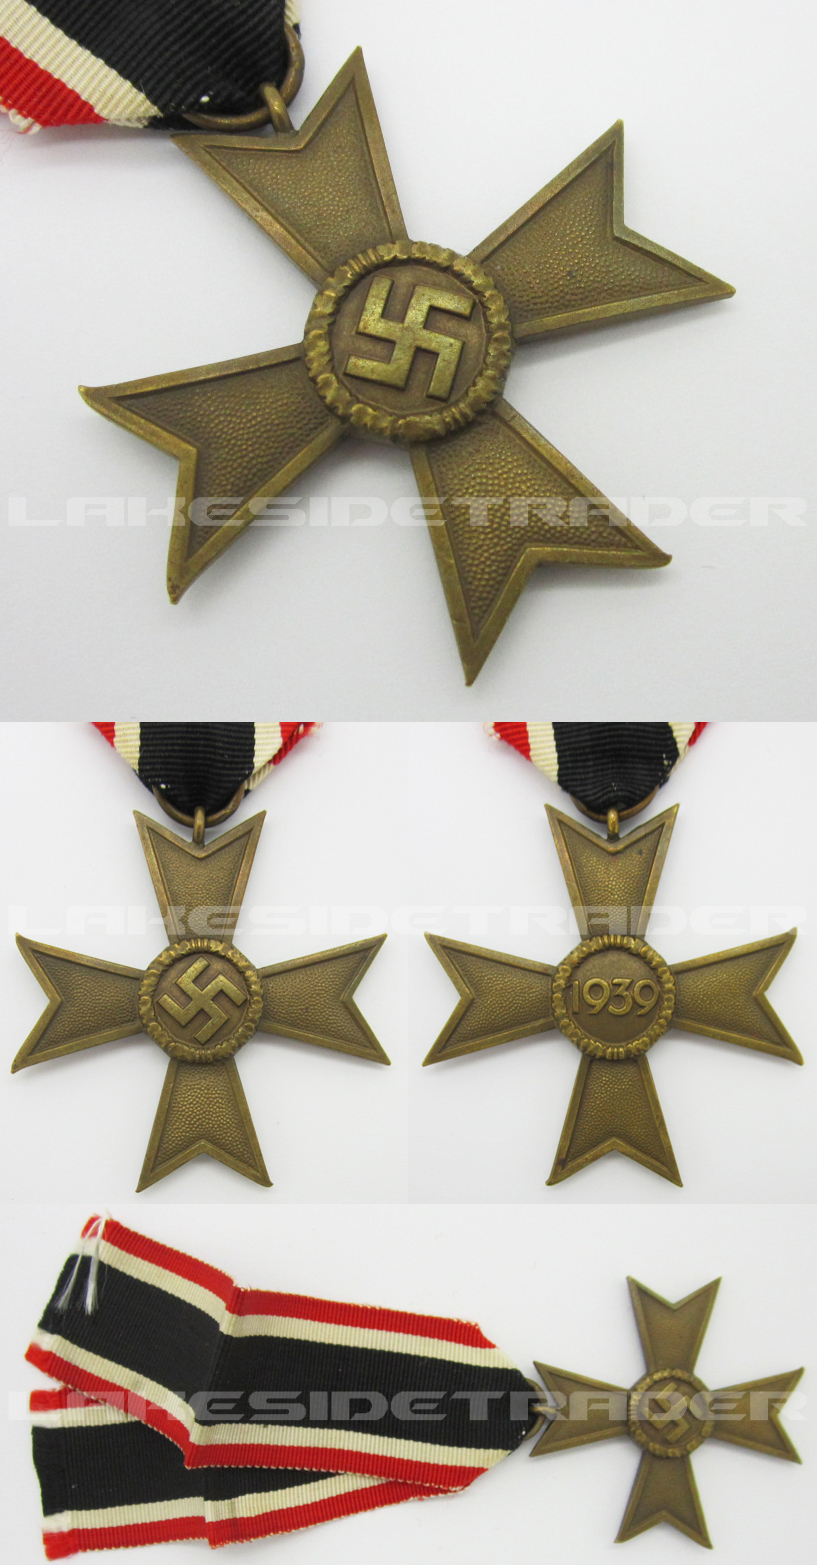 2nd Class War Merit Cross without Swords